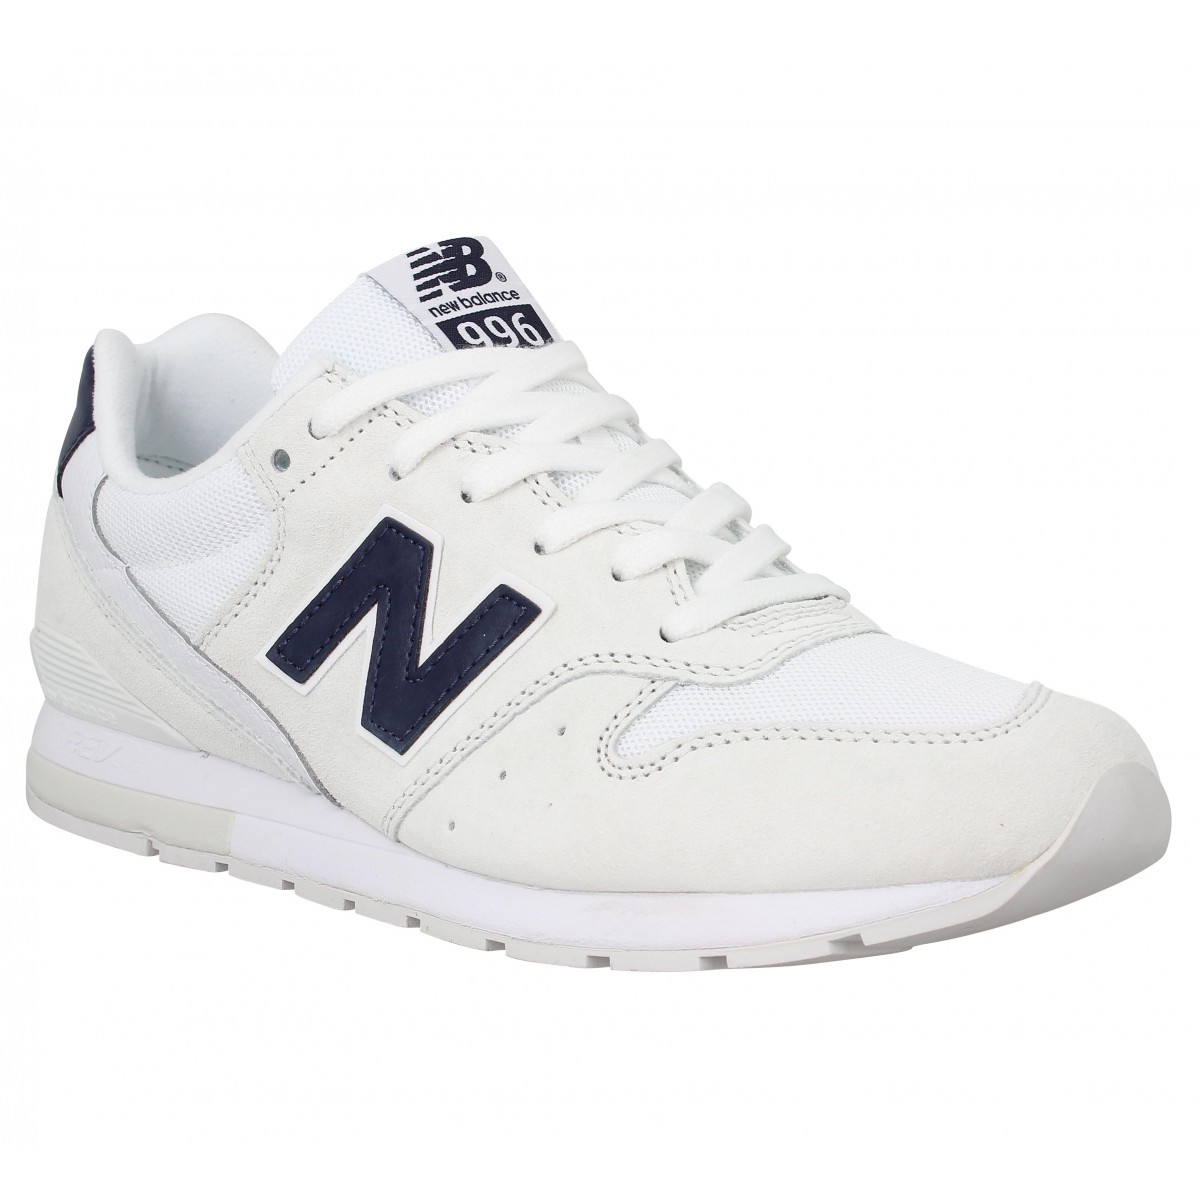 soldes new balance mrl 996 blanc marine homme fanny chaussures. Black Bedroom Furniture Sets. Home Design Ideas